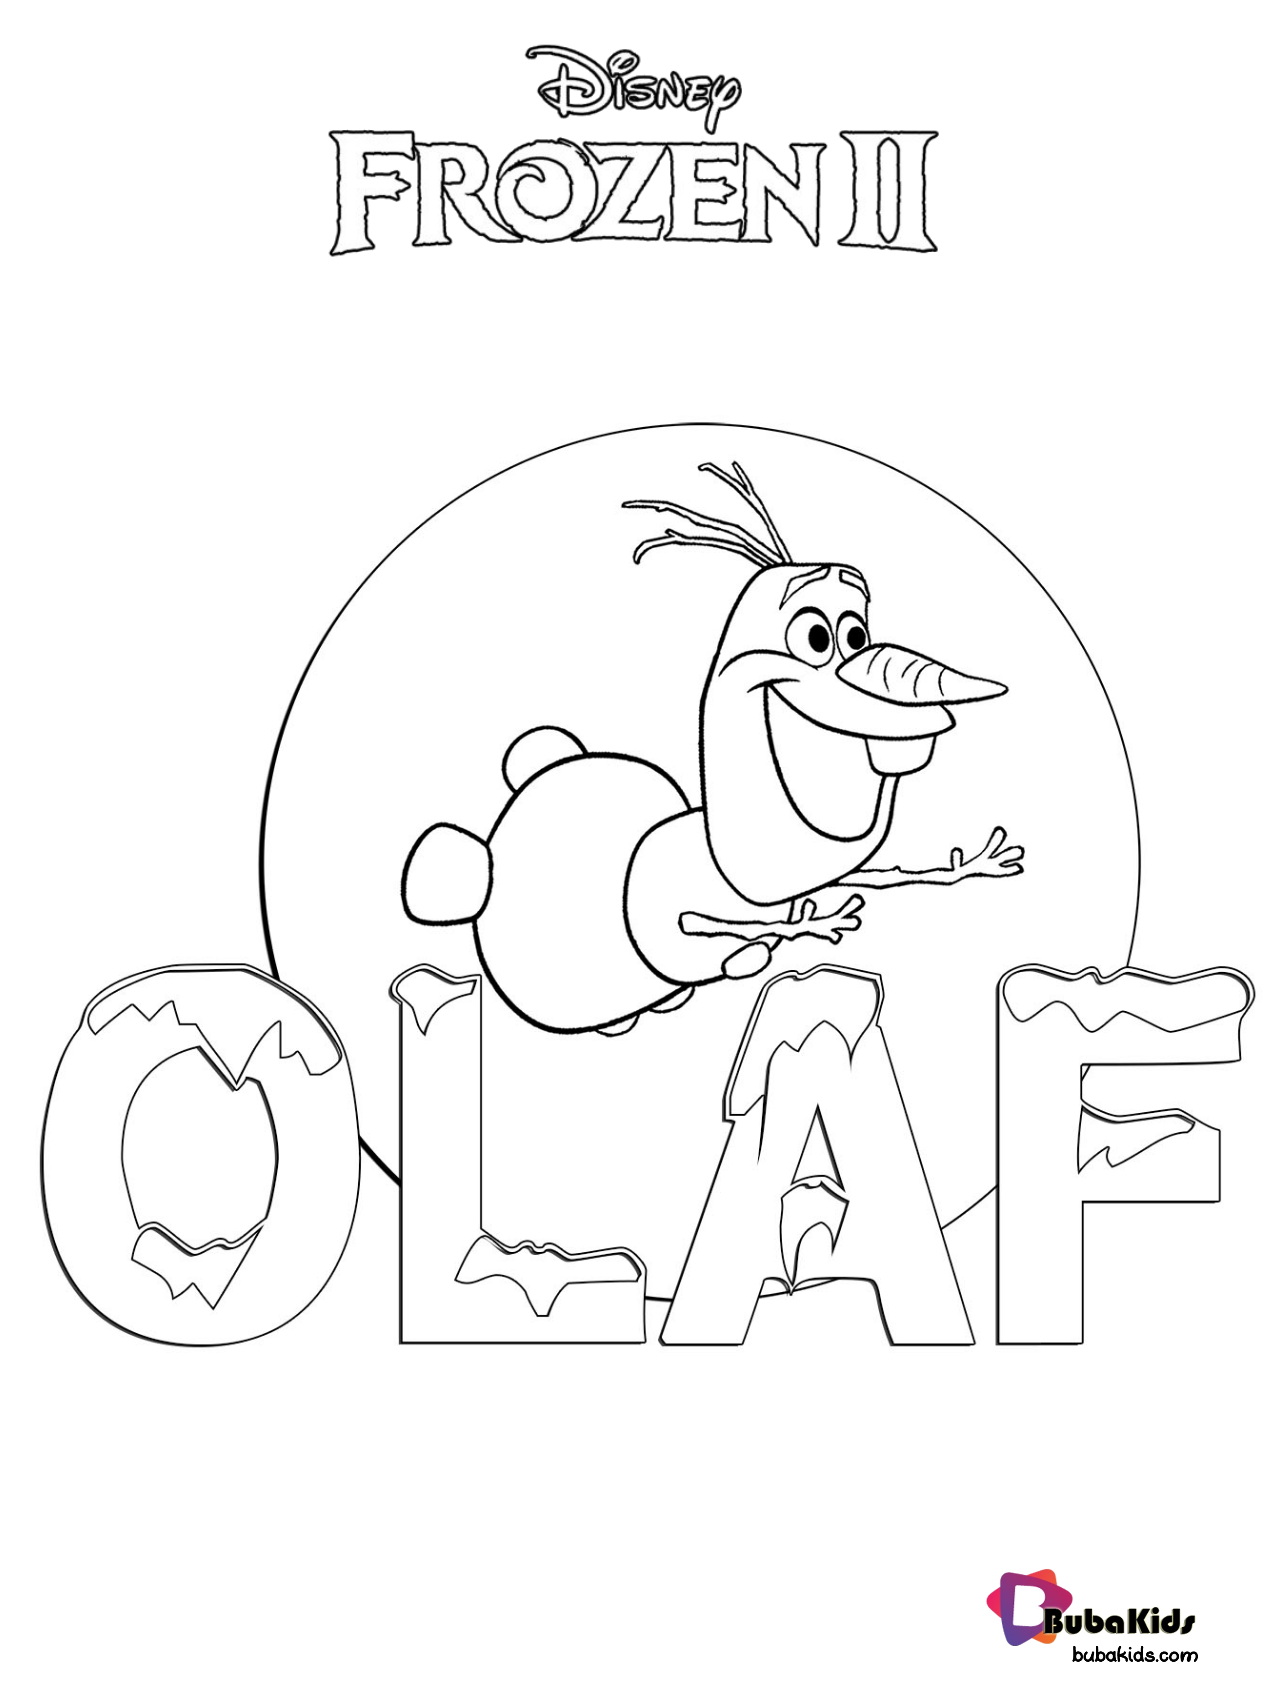 Frozen 2 Olaf The Snowman Coloring Page Coloring Page Frozen 2 Olaf The Snowman Printa Snowman Coloring Pages Frozen Coloring Pages Cartoon Coloring Pages